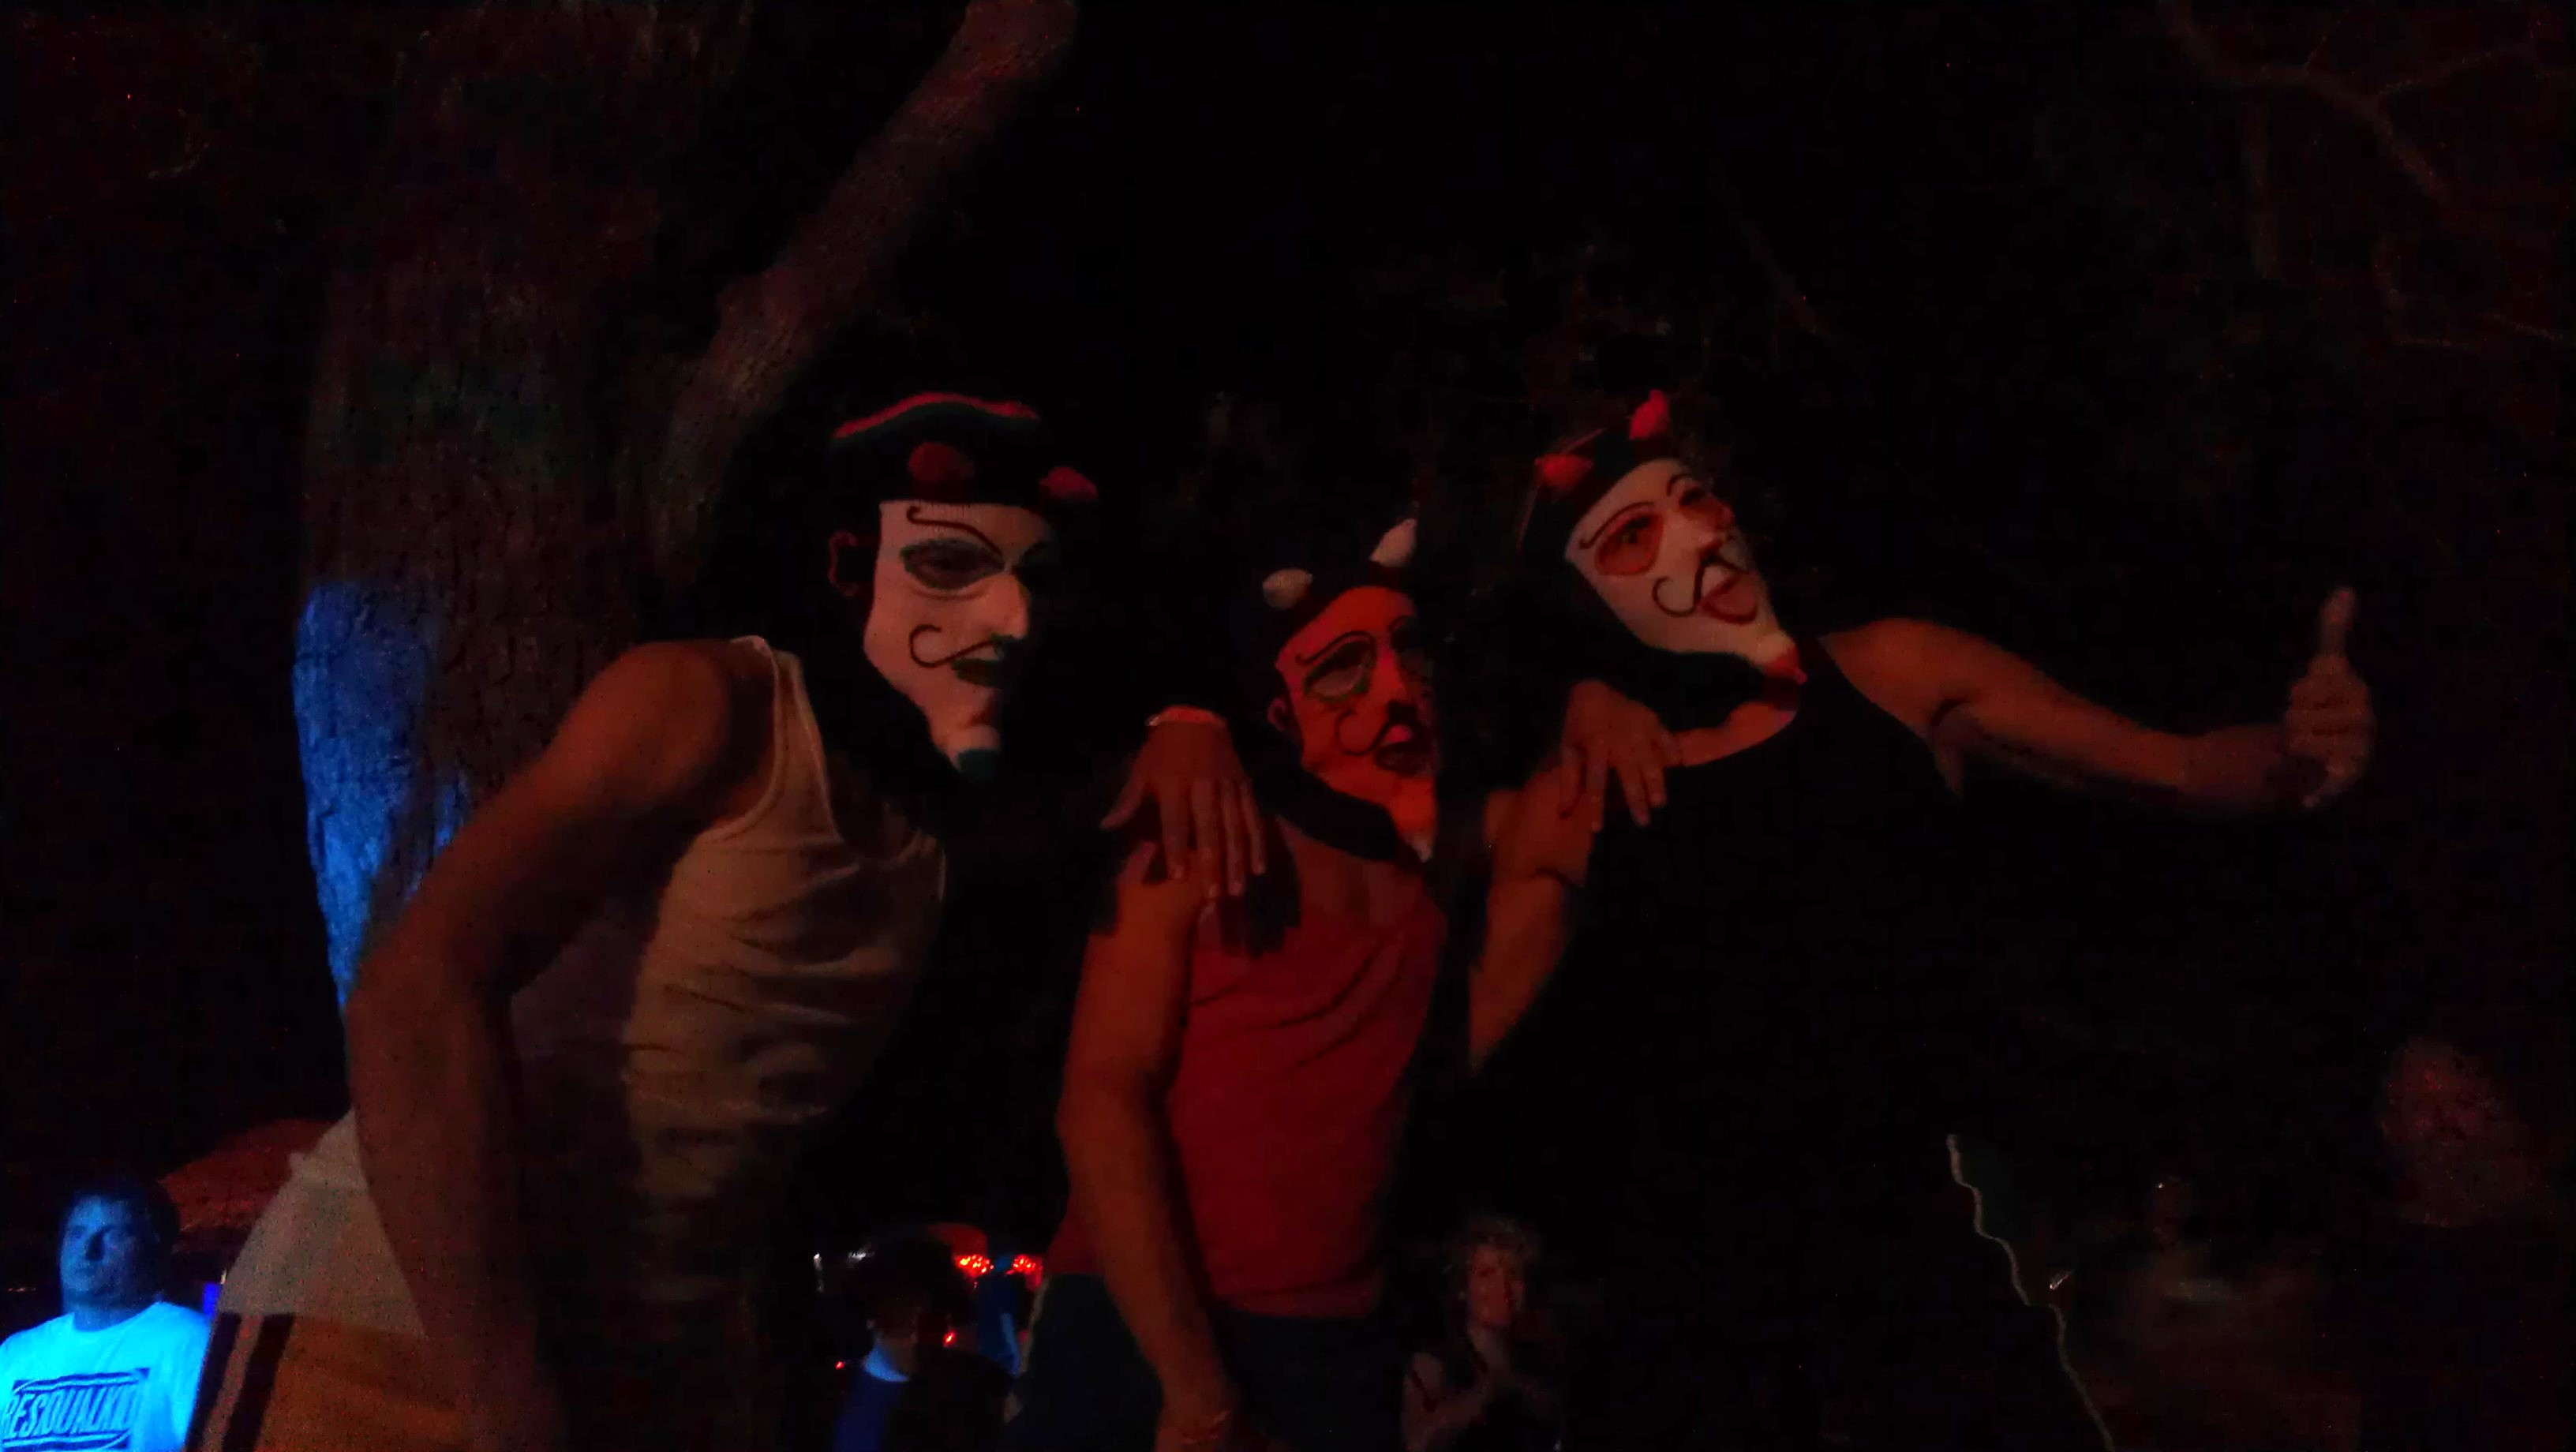 Three members of Flam Chen in Devil Mask